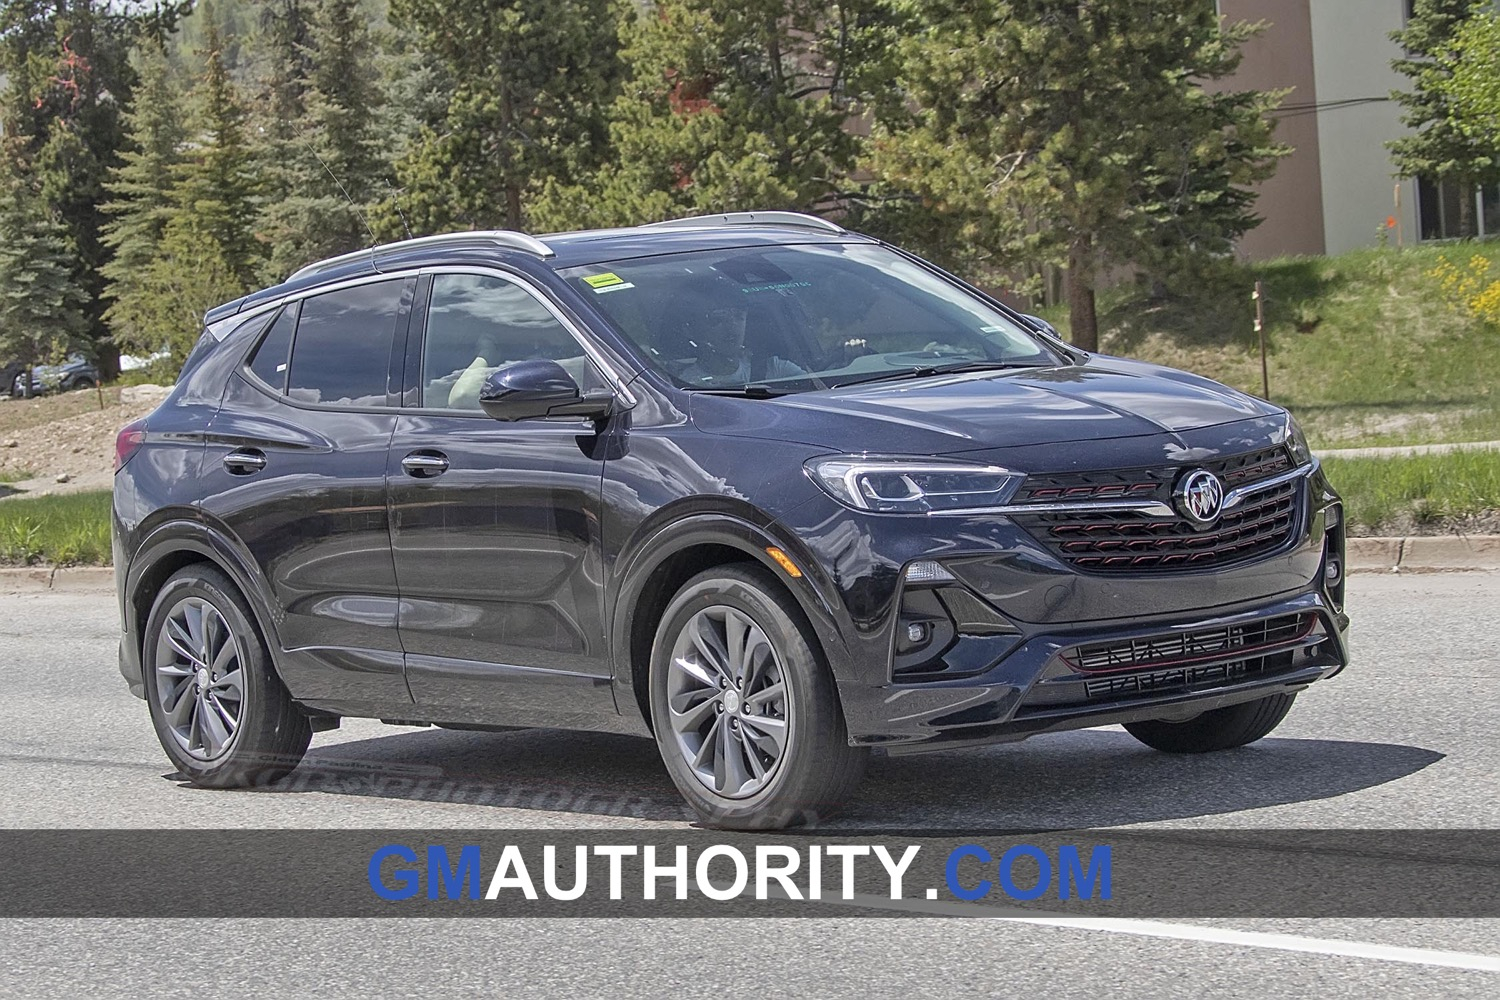 2022 Buick Encore Gx Info, Specs, Wiki | Gm Authority New 2022 Buick Encore Gx Pictures, Ratings, Road Test